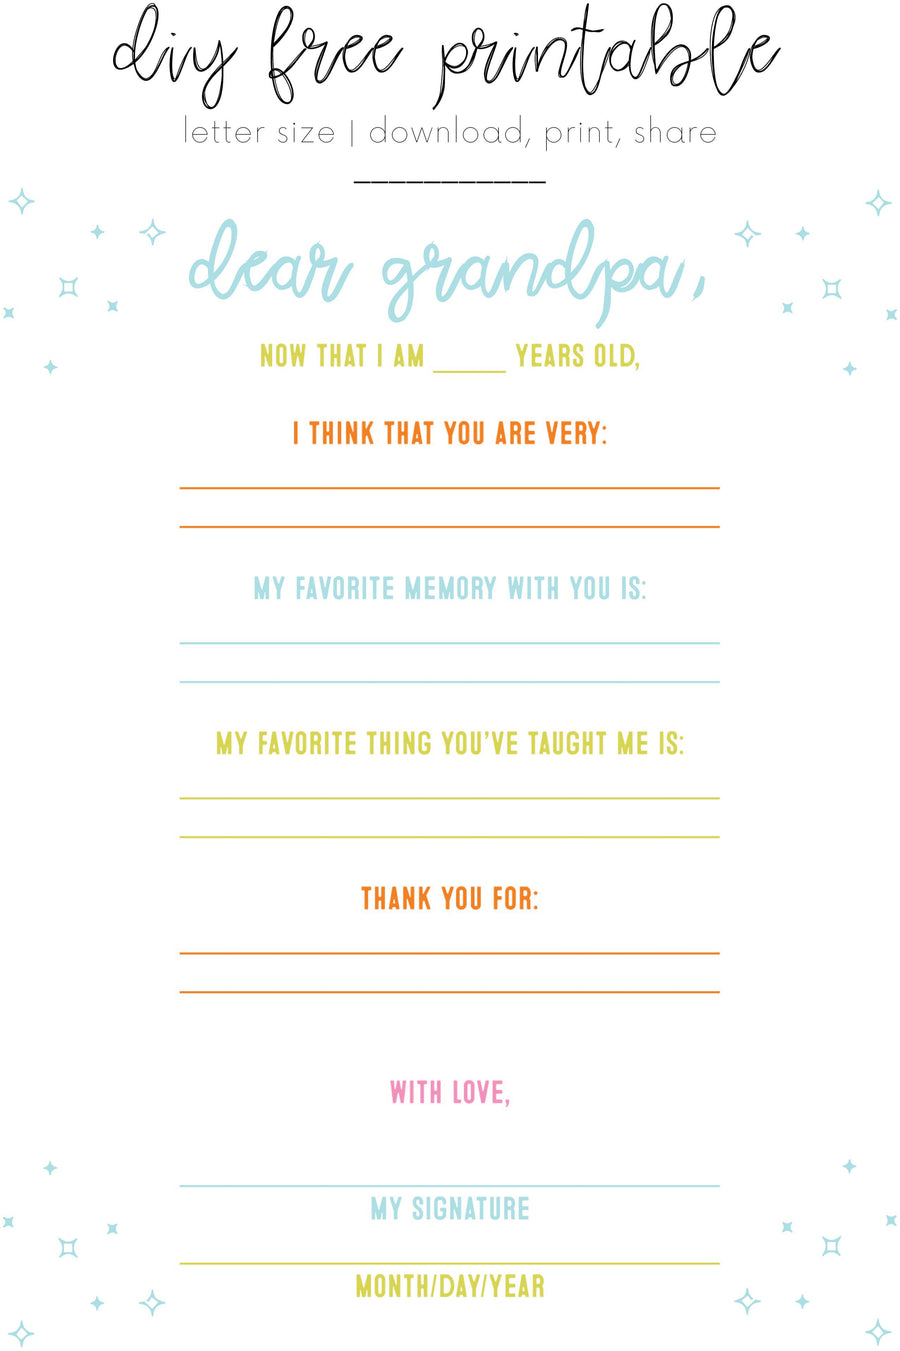 DIY Dear Grandpa Father's Day Printable